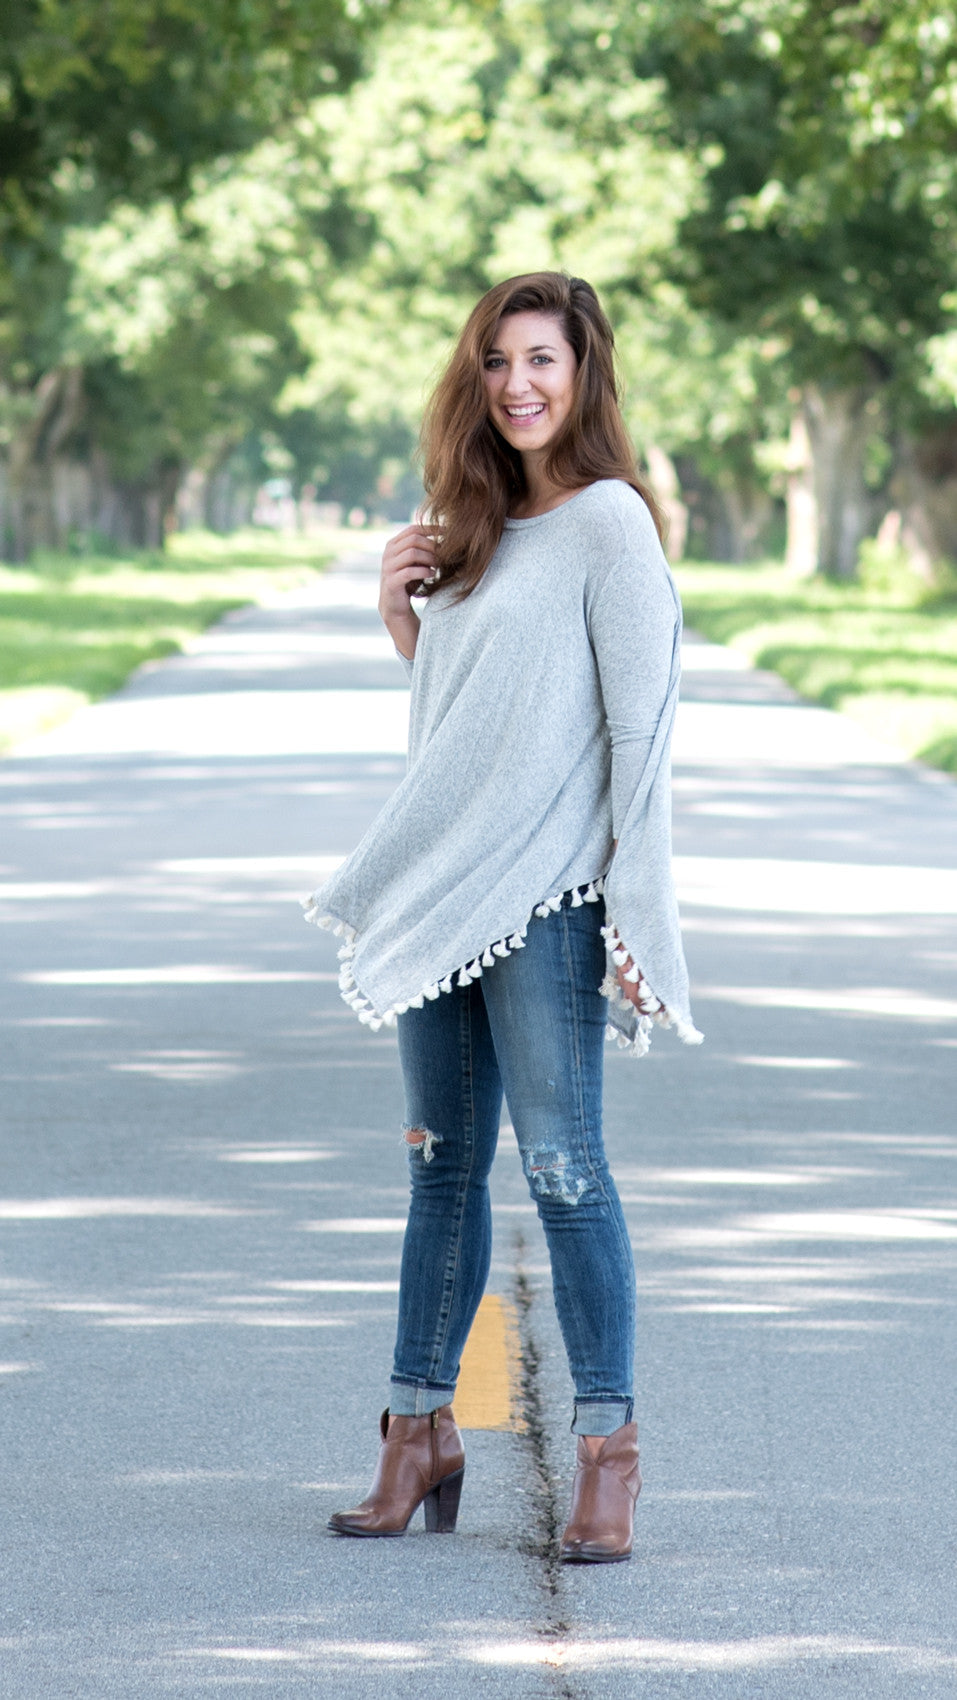 heather grey swing top with tassels